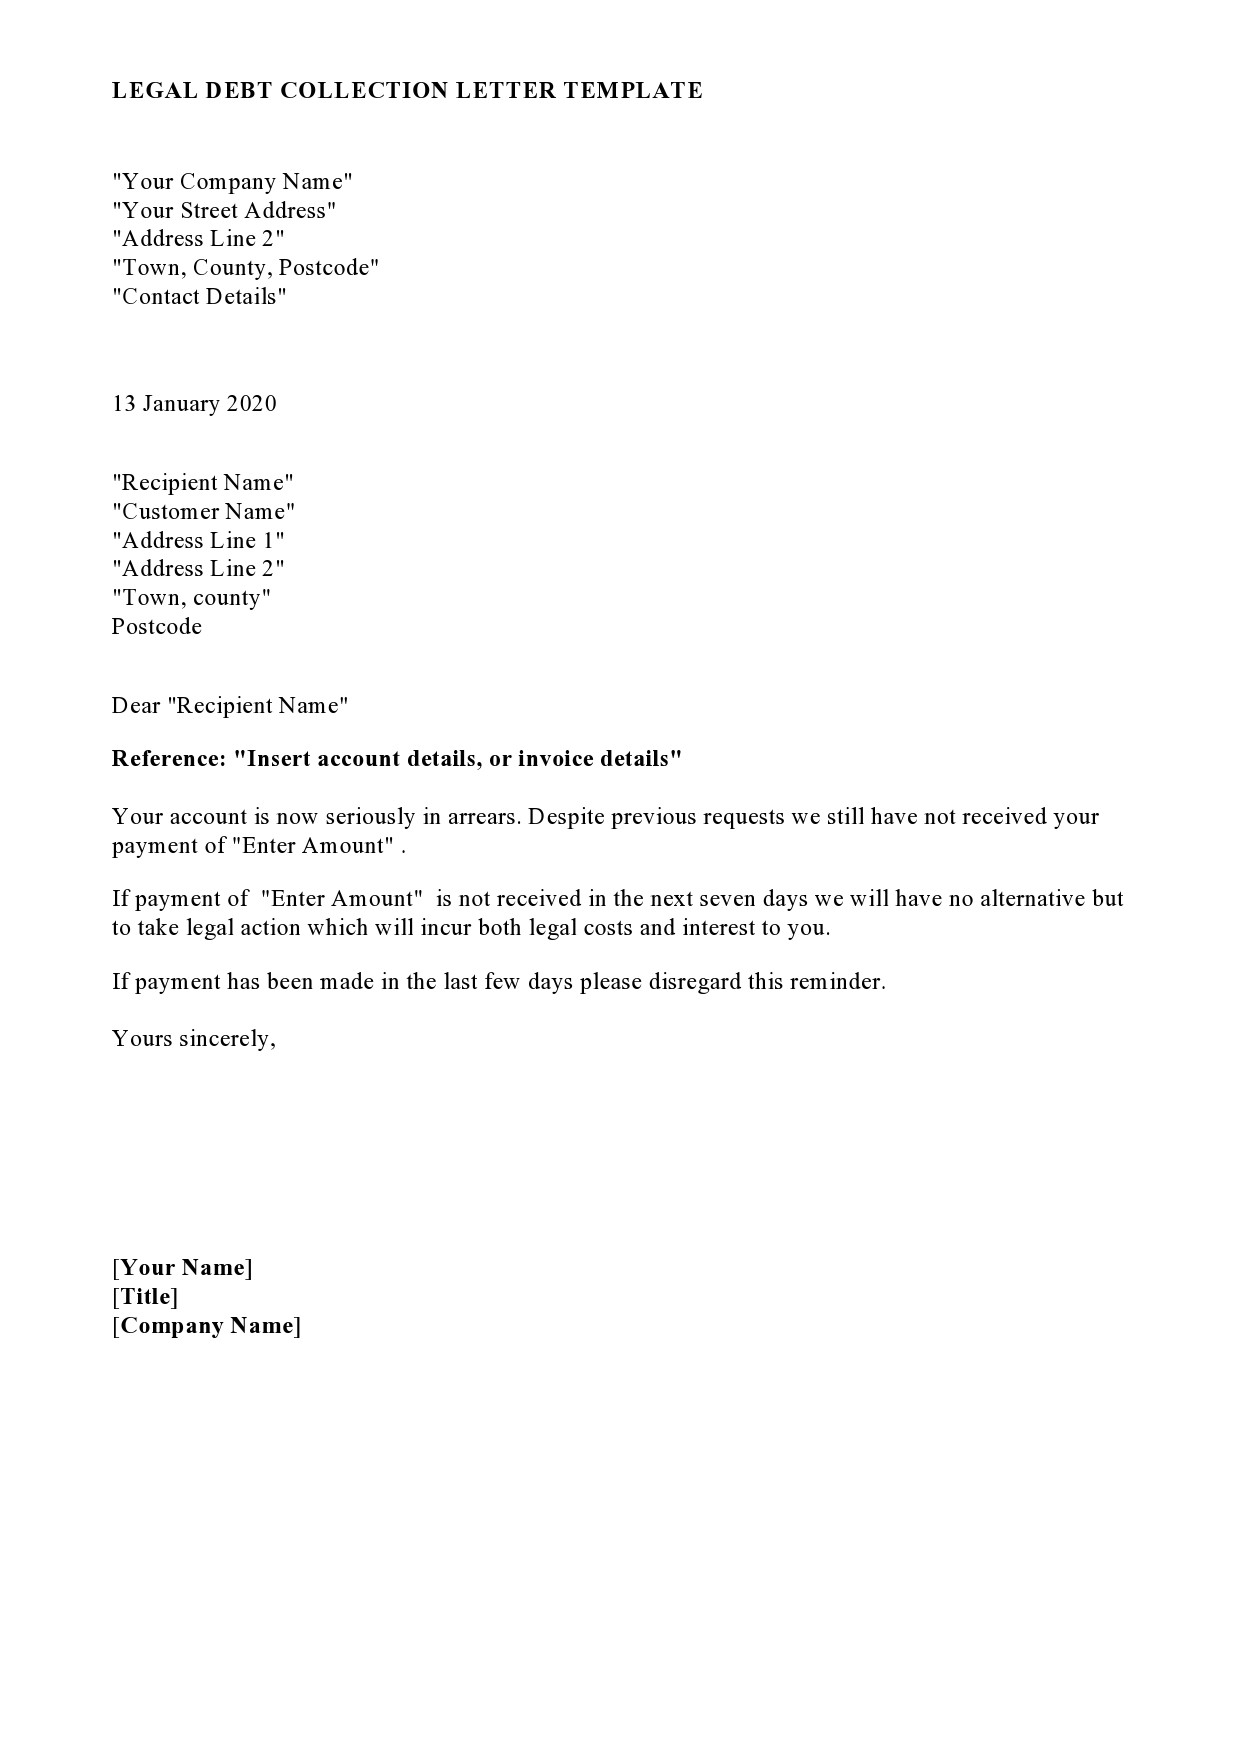 Letter Of Intent To Take Legal Action from templatelab.com